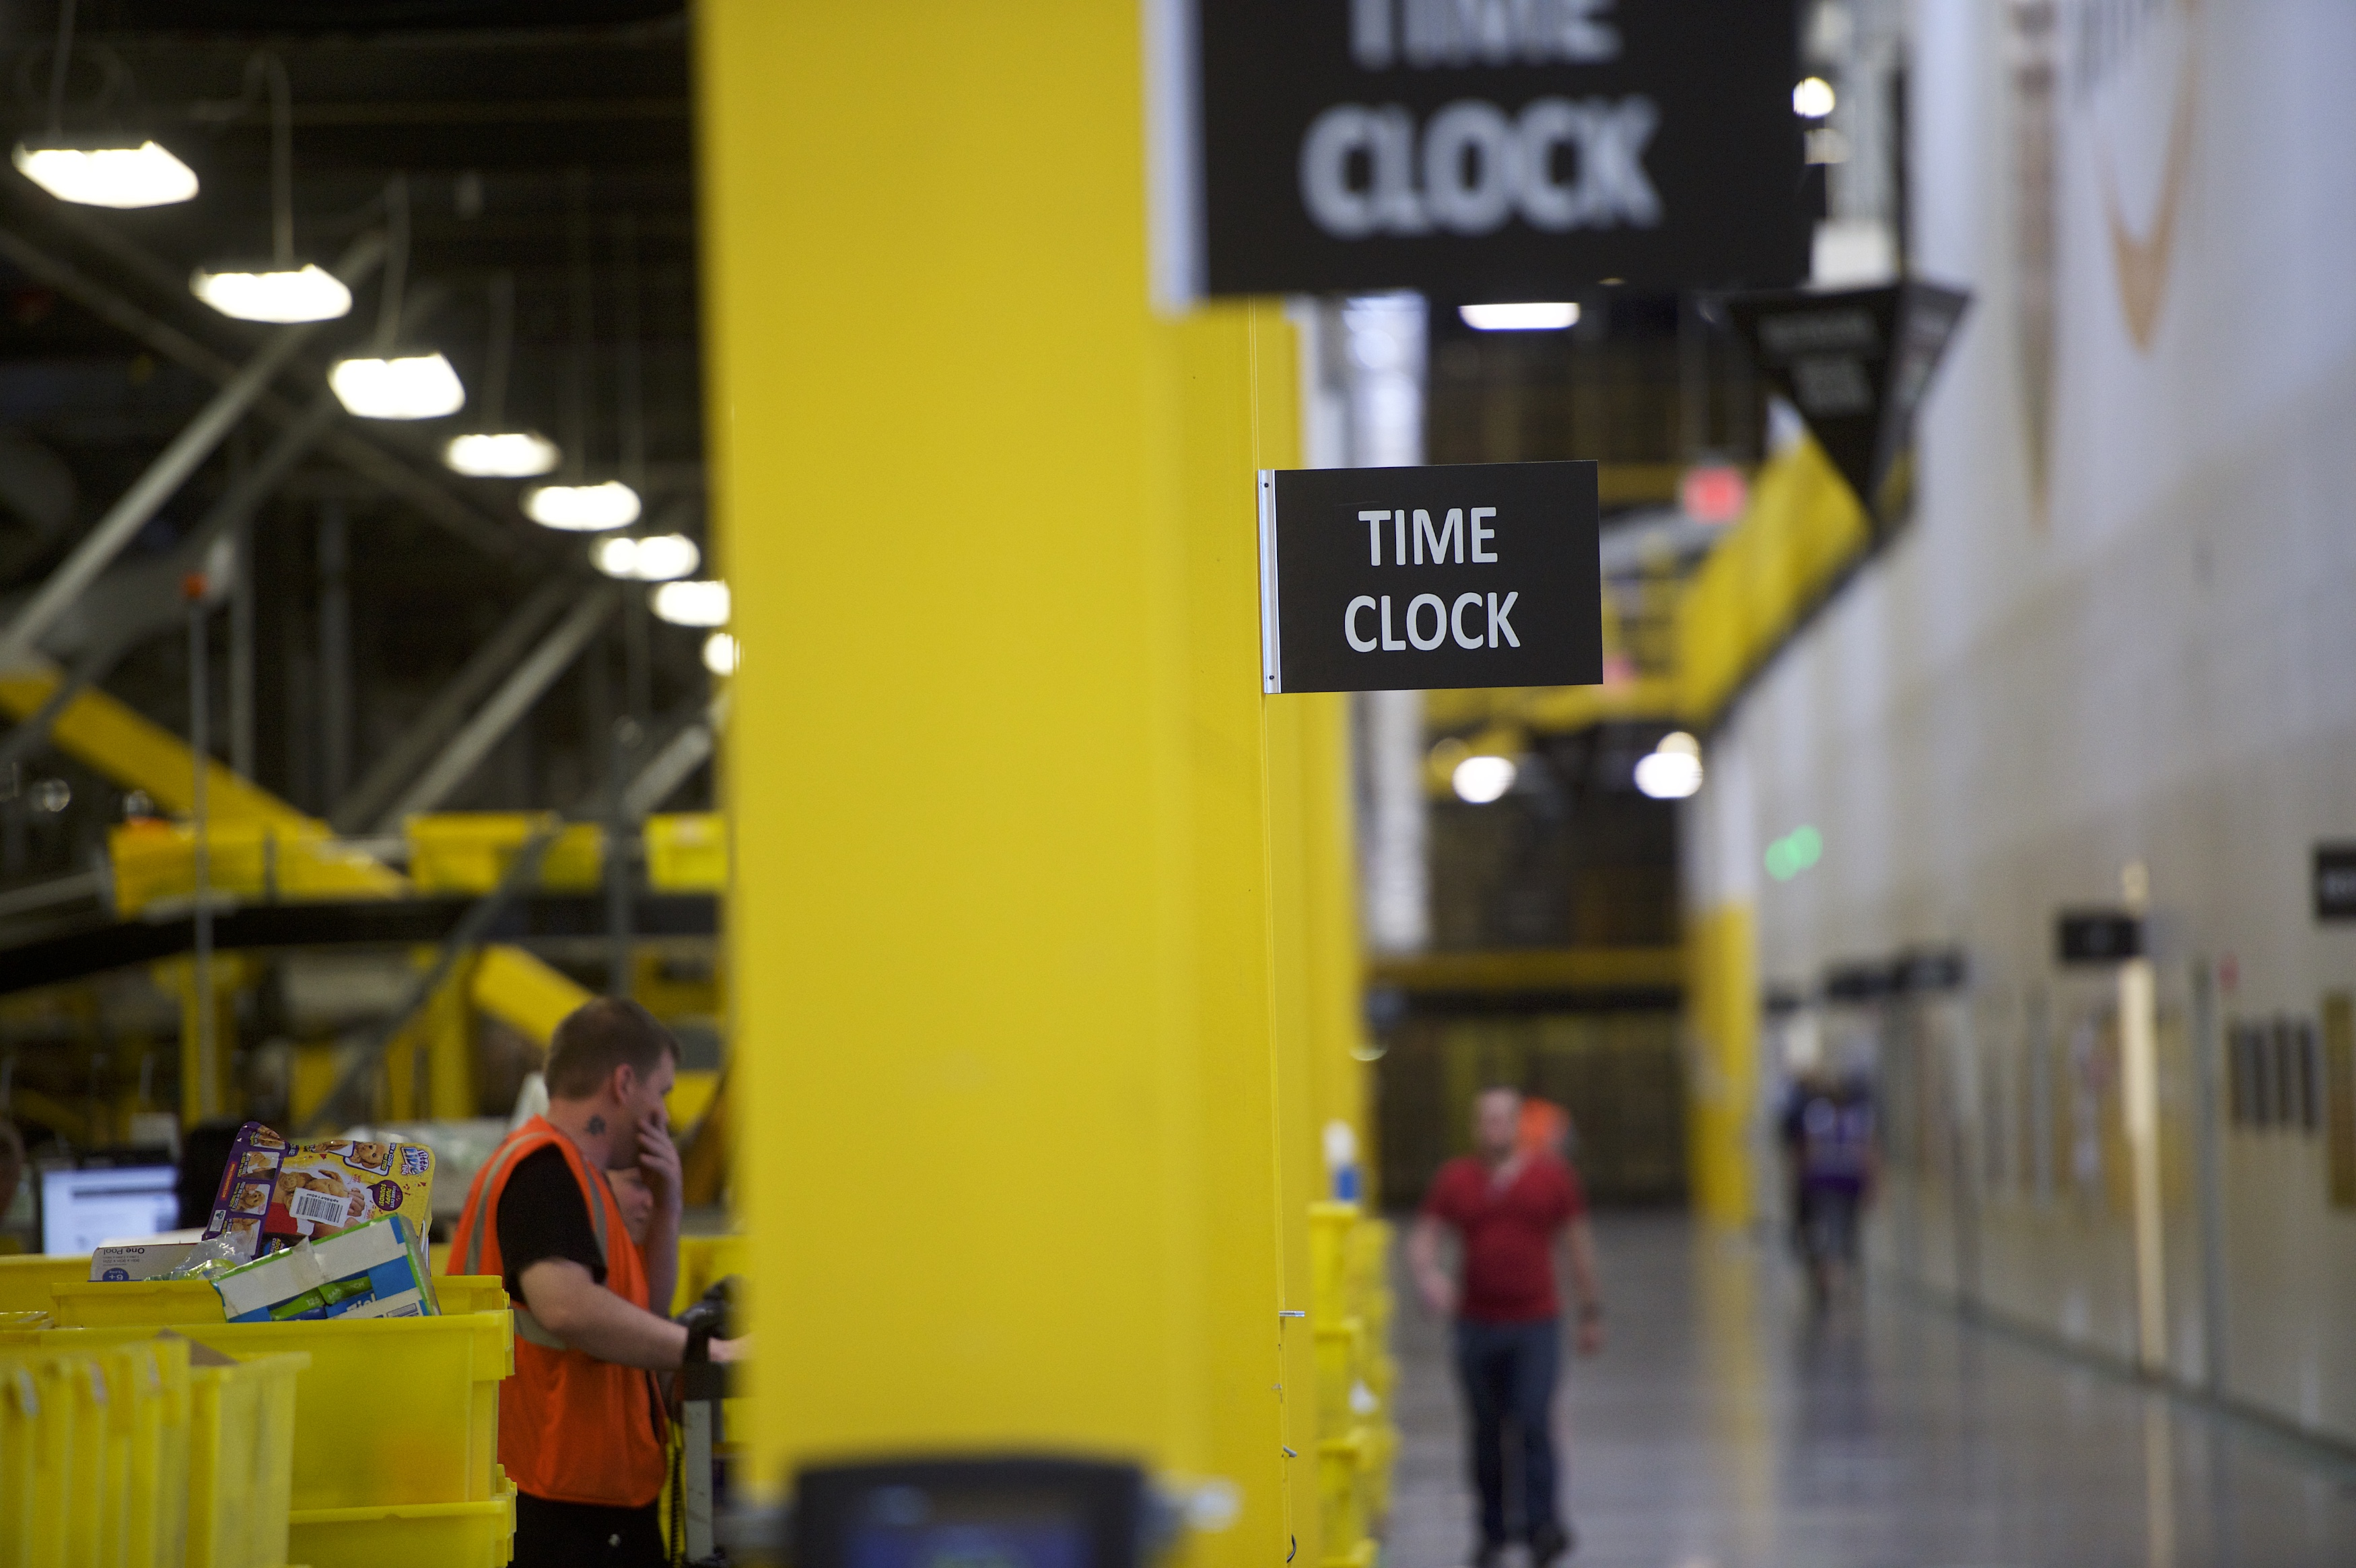 Amazon's public warehouse tours: what you'll see - Vox